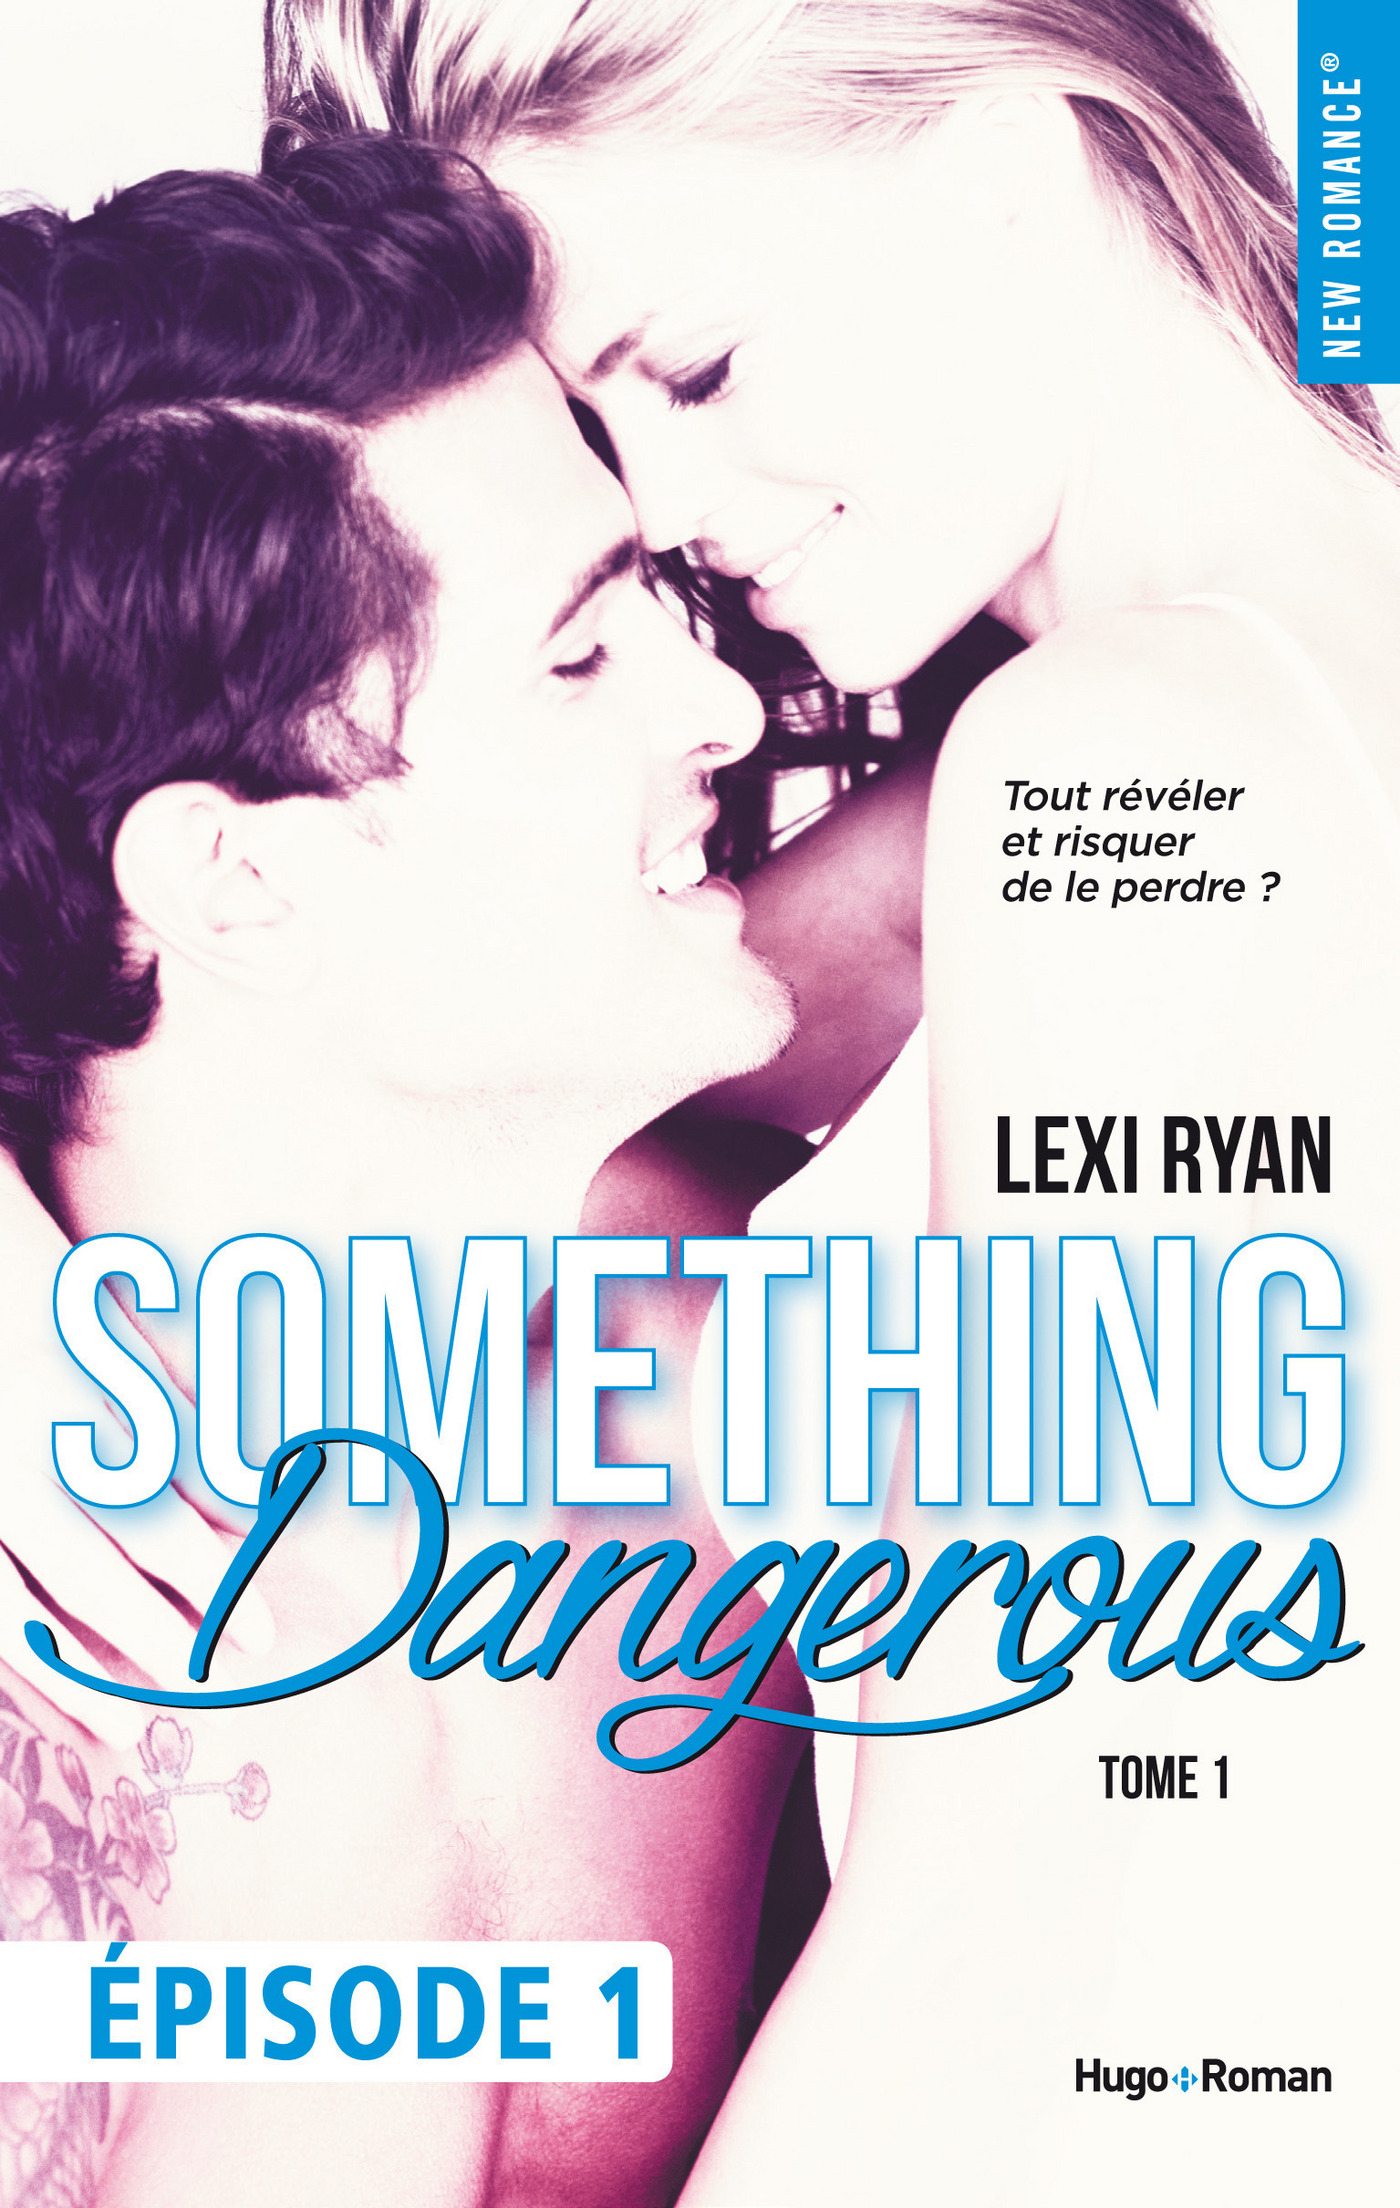 Reckless & Real Something dangerous Episode 1 - tome 1